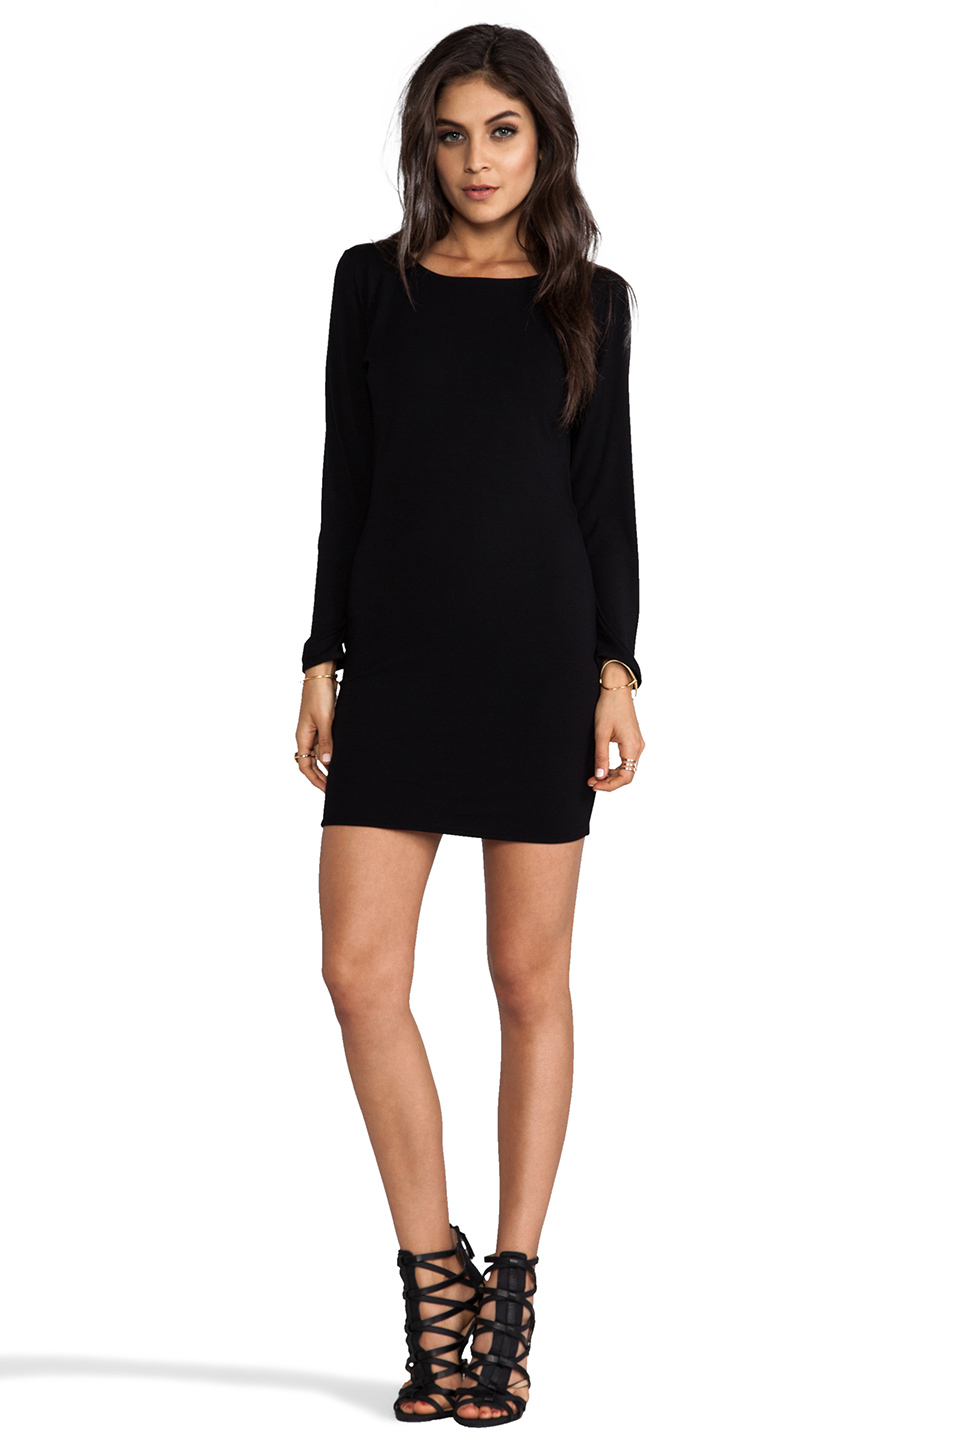 Indah Vida Open Back Day to Night Mini Dress in Black